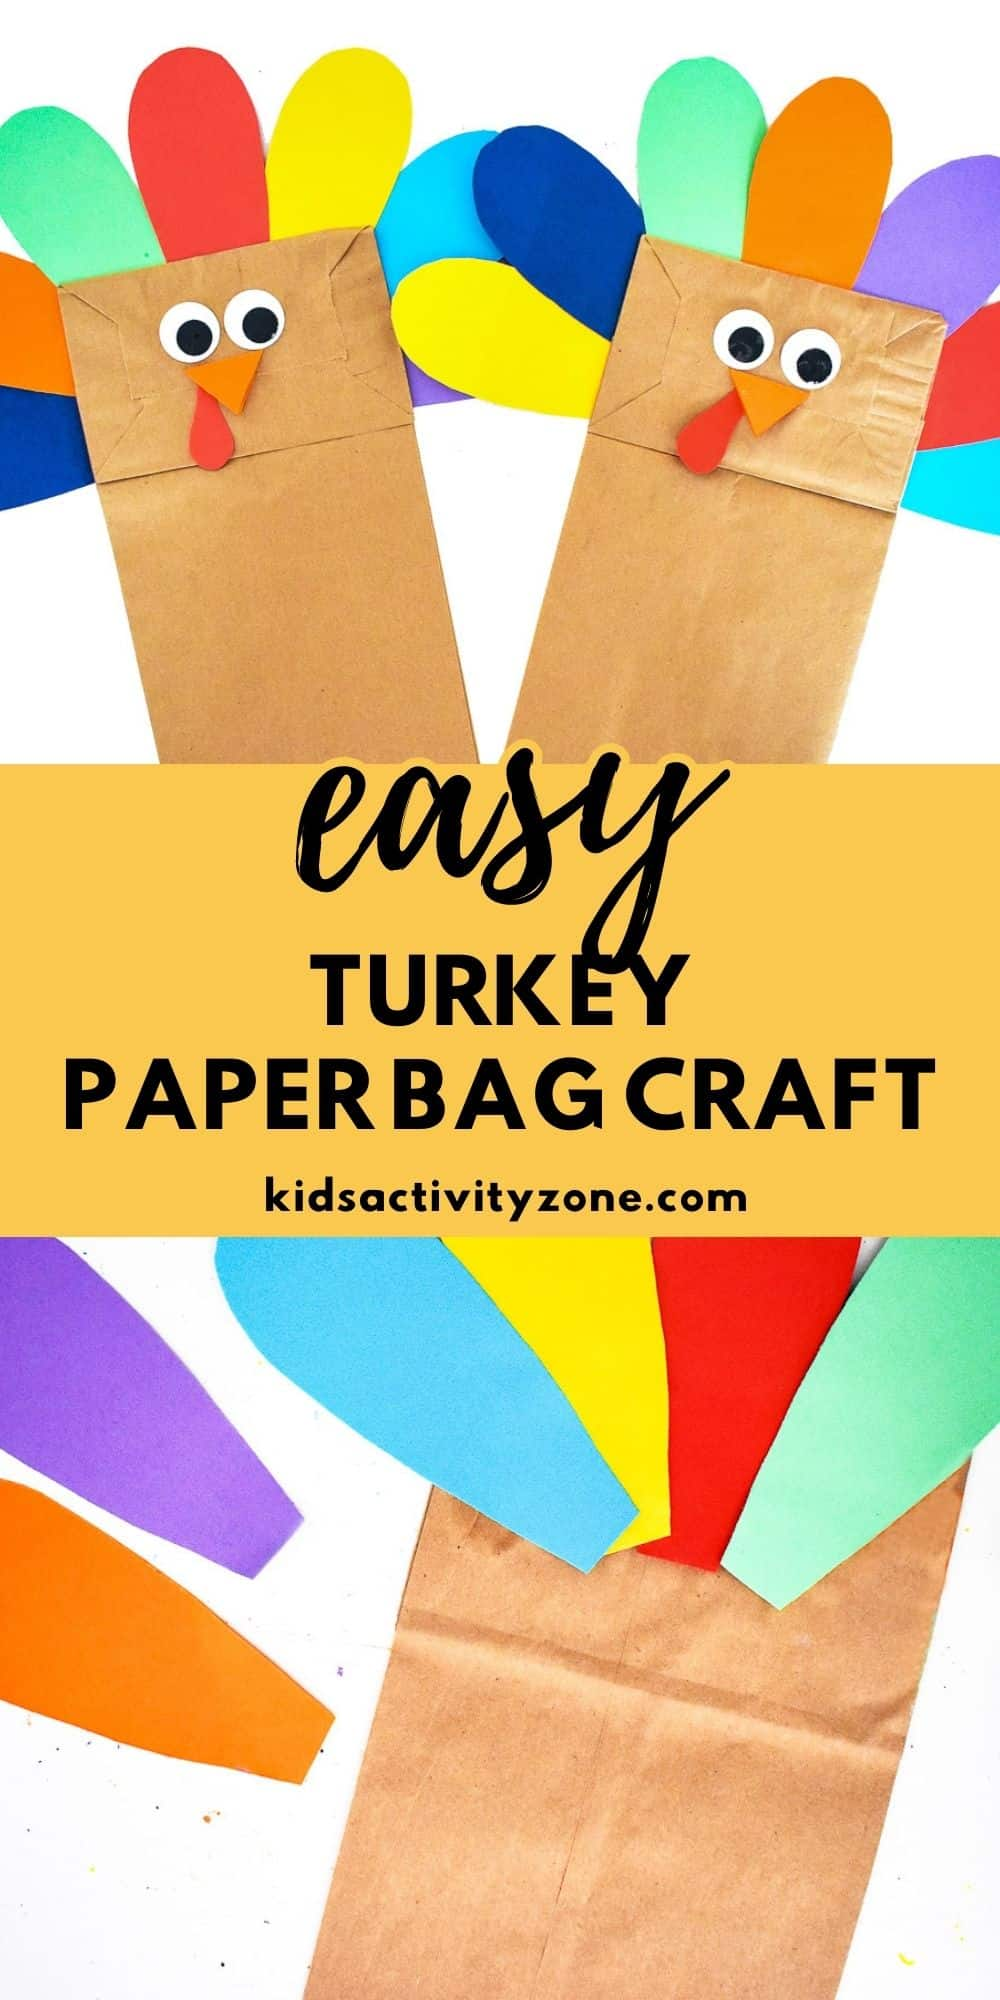 Looking for a fun and easy Thanksgiving craft for the kids? This adorable Turkey Paper Bag Craft is so easy to make and fun for all. Simply cut the feathers out of different colors of paper and then assemble the turkey! Cute, fun and easy!